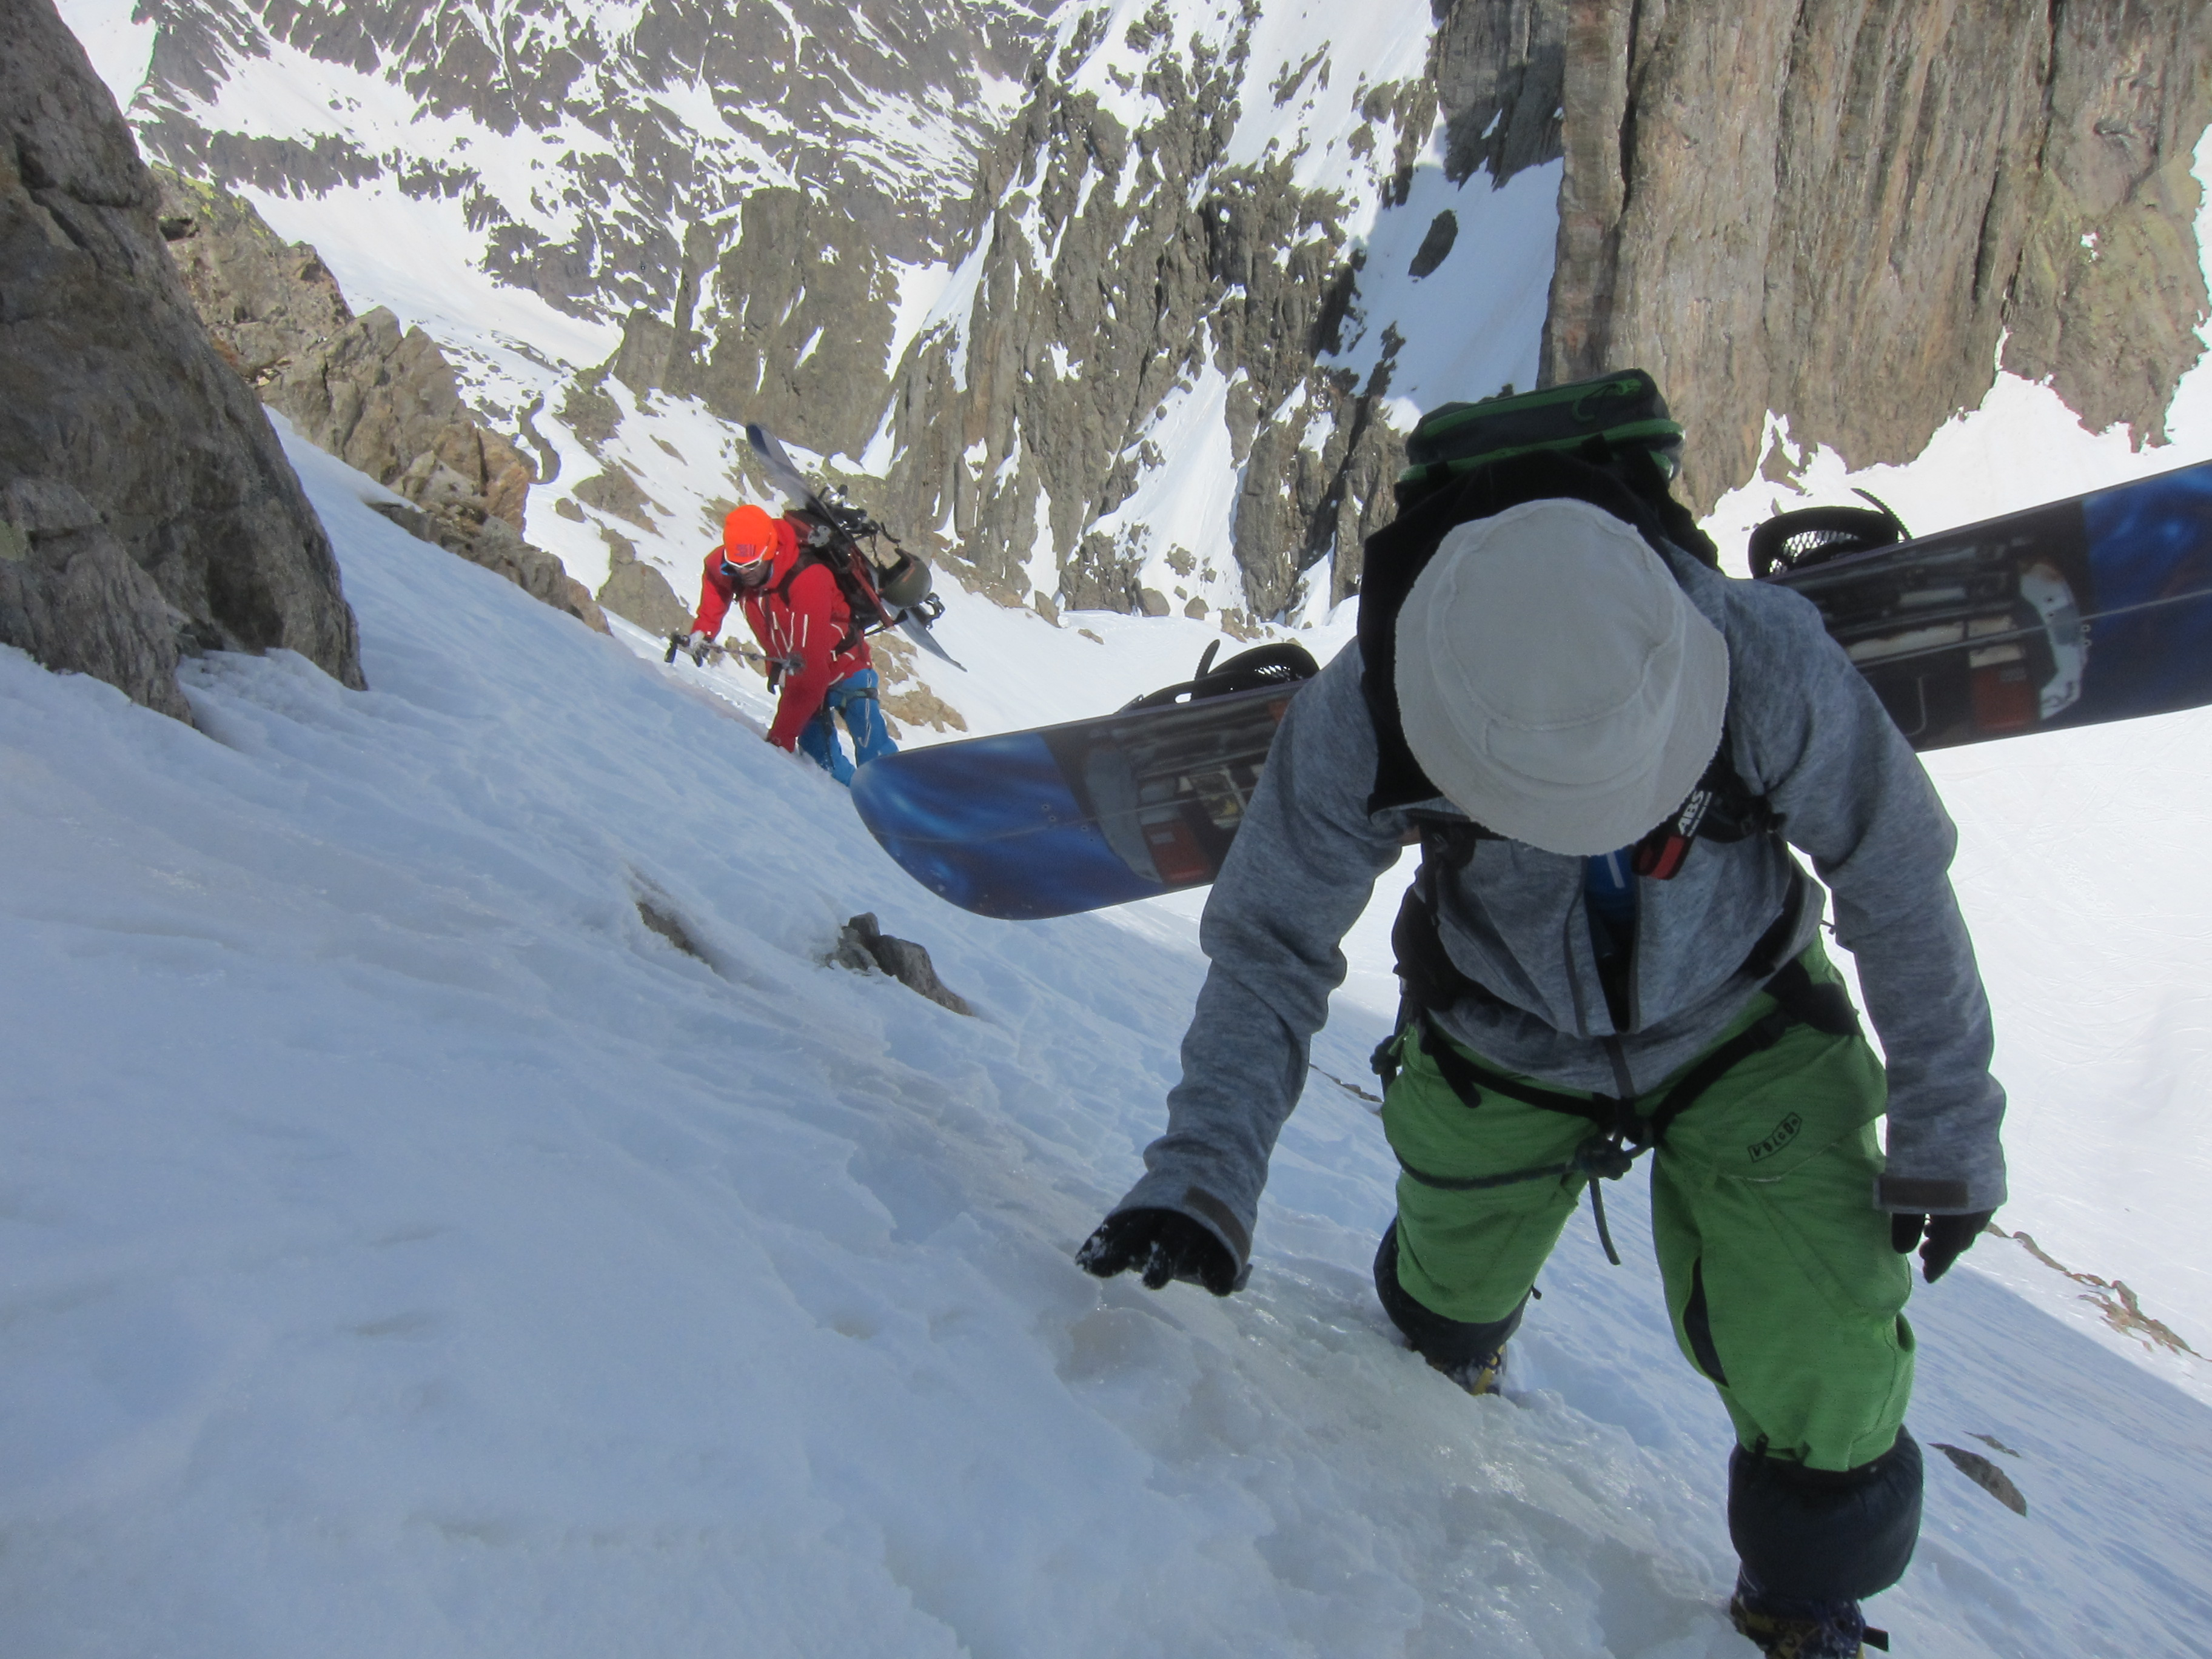 Steep boot packing to access the north couloir